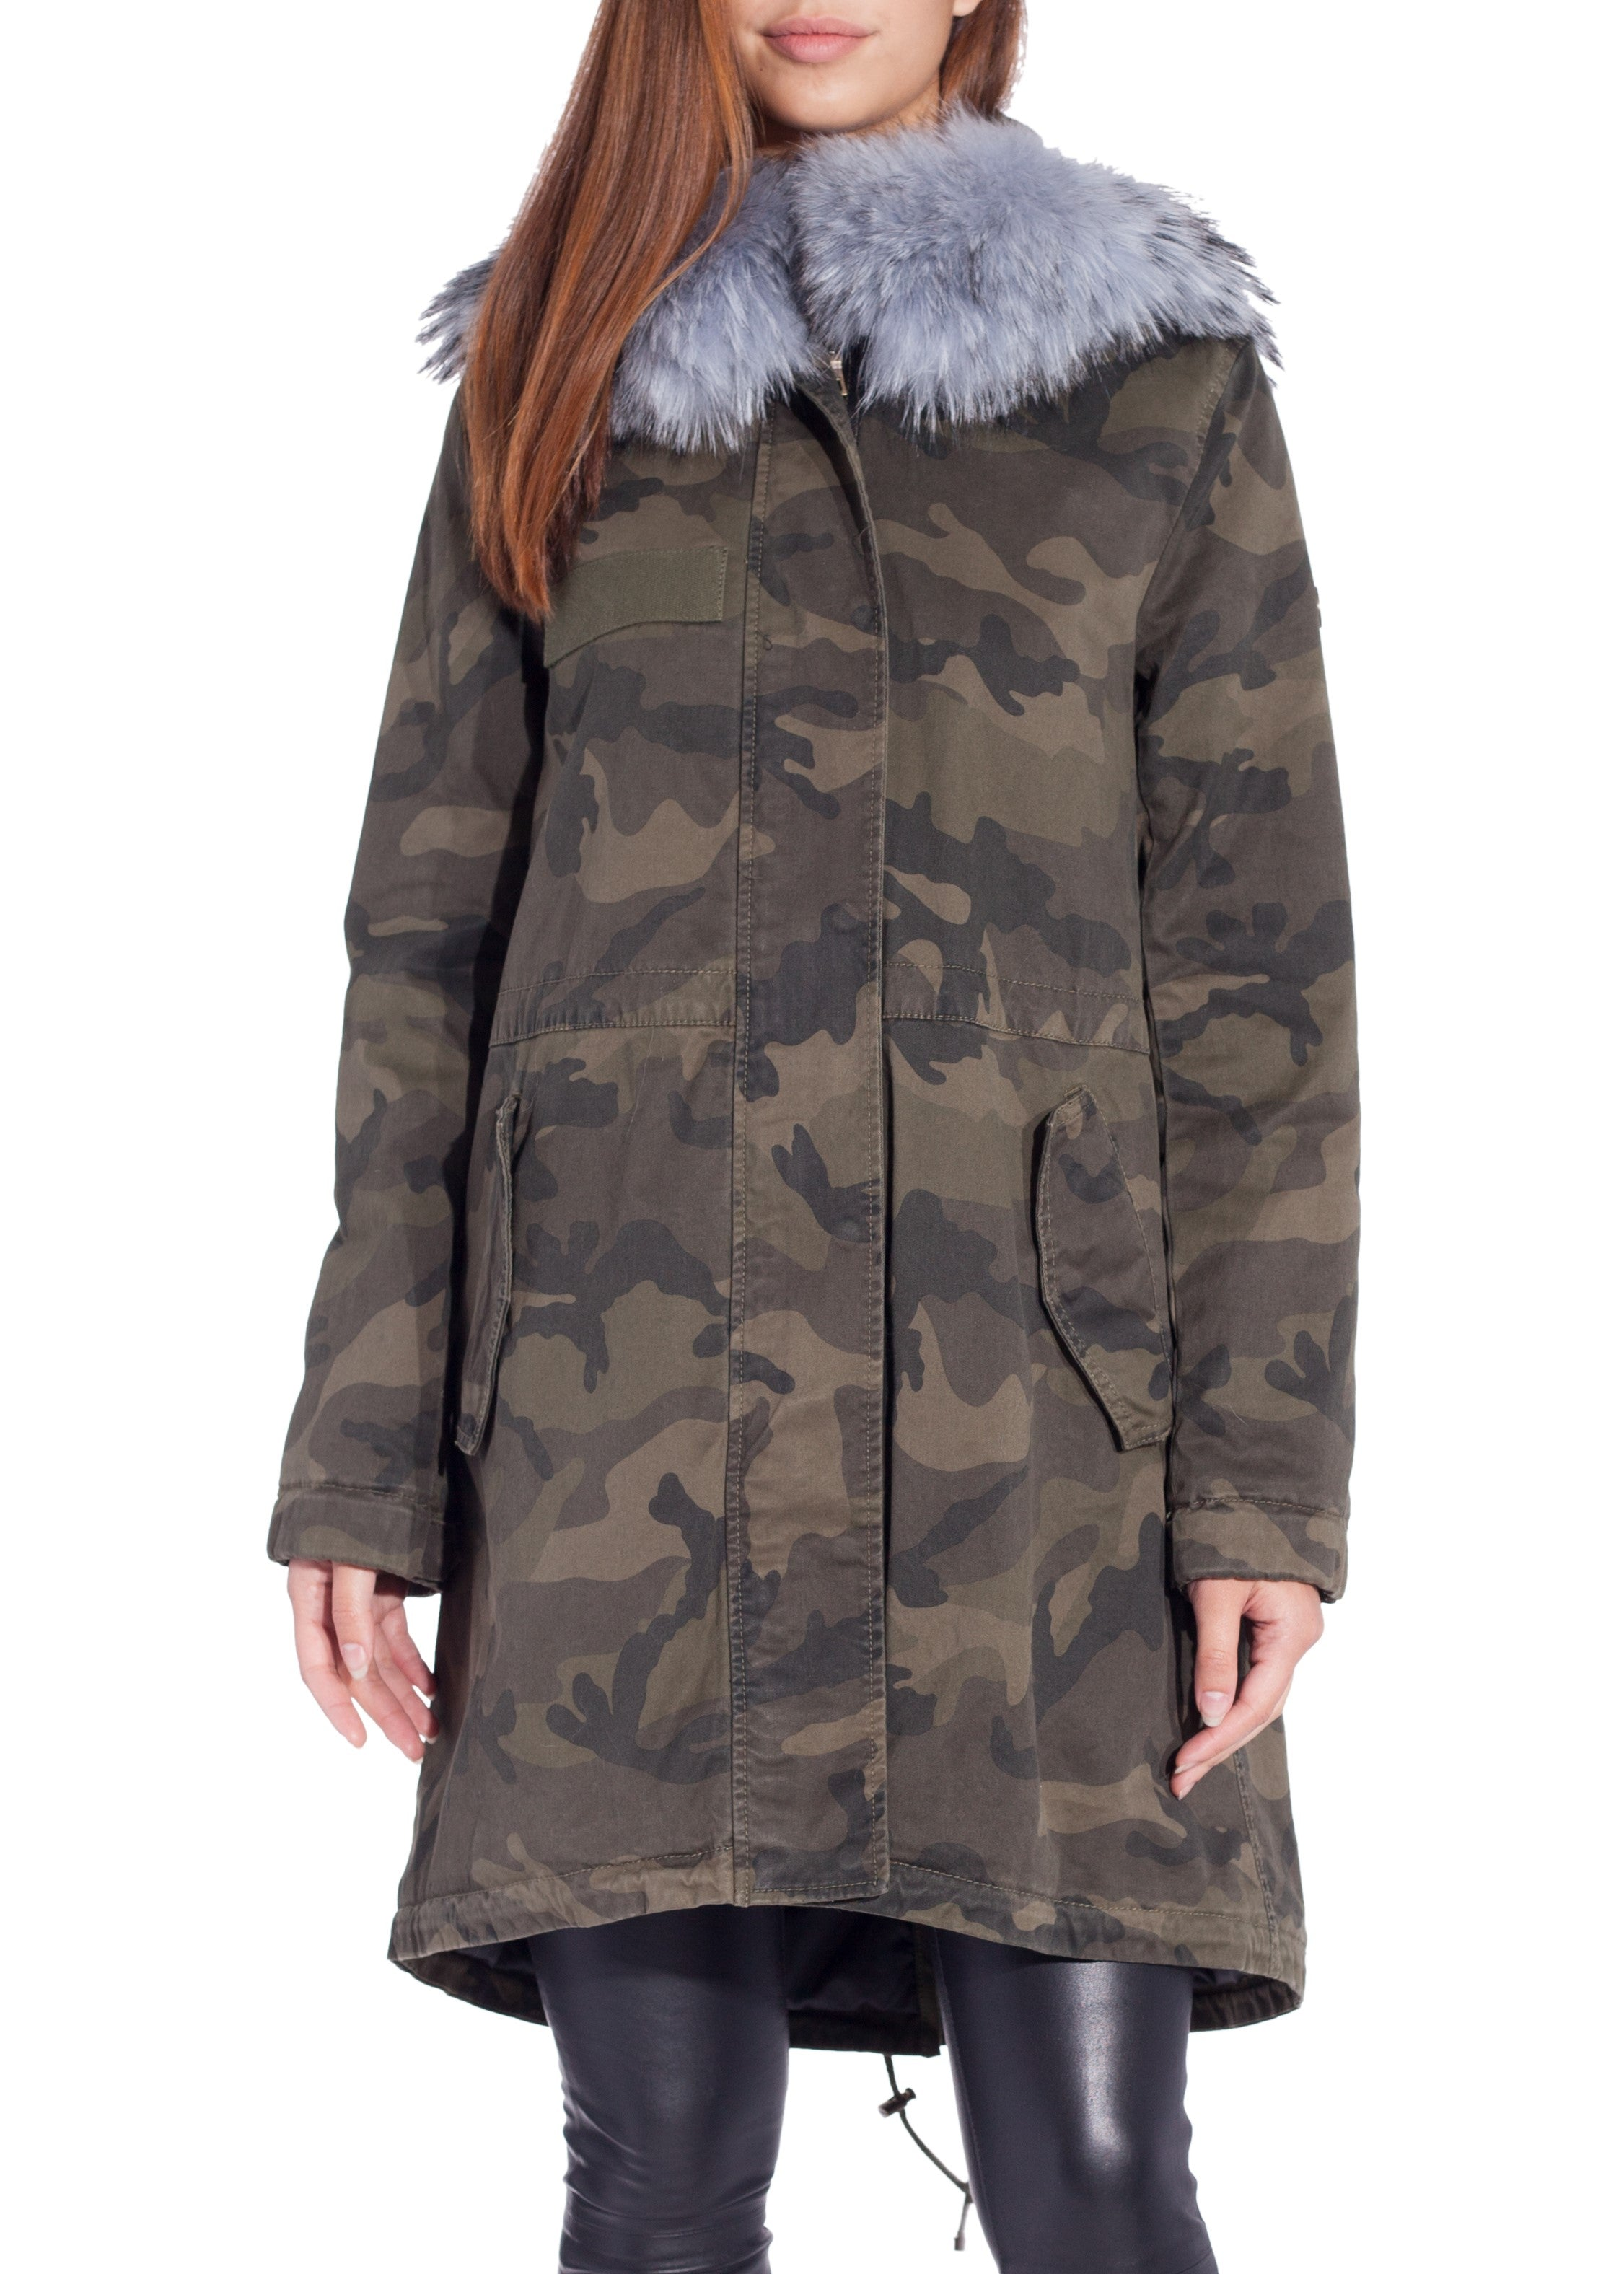 Blonde No. 8 albi camo coat with fur hood